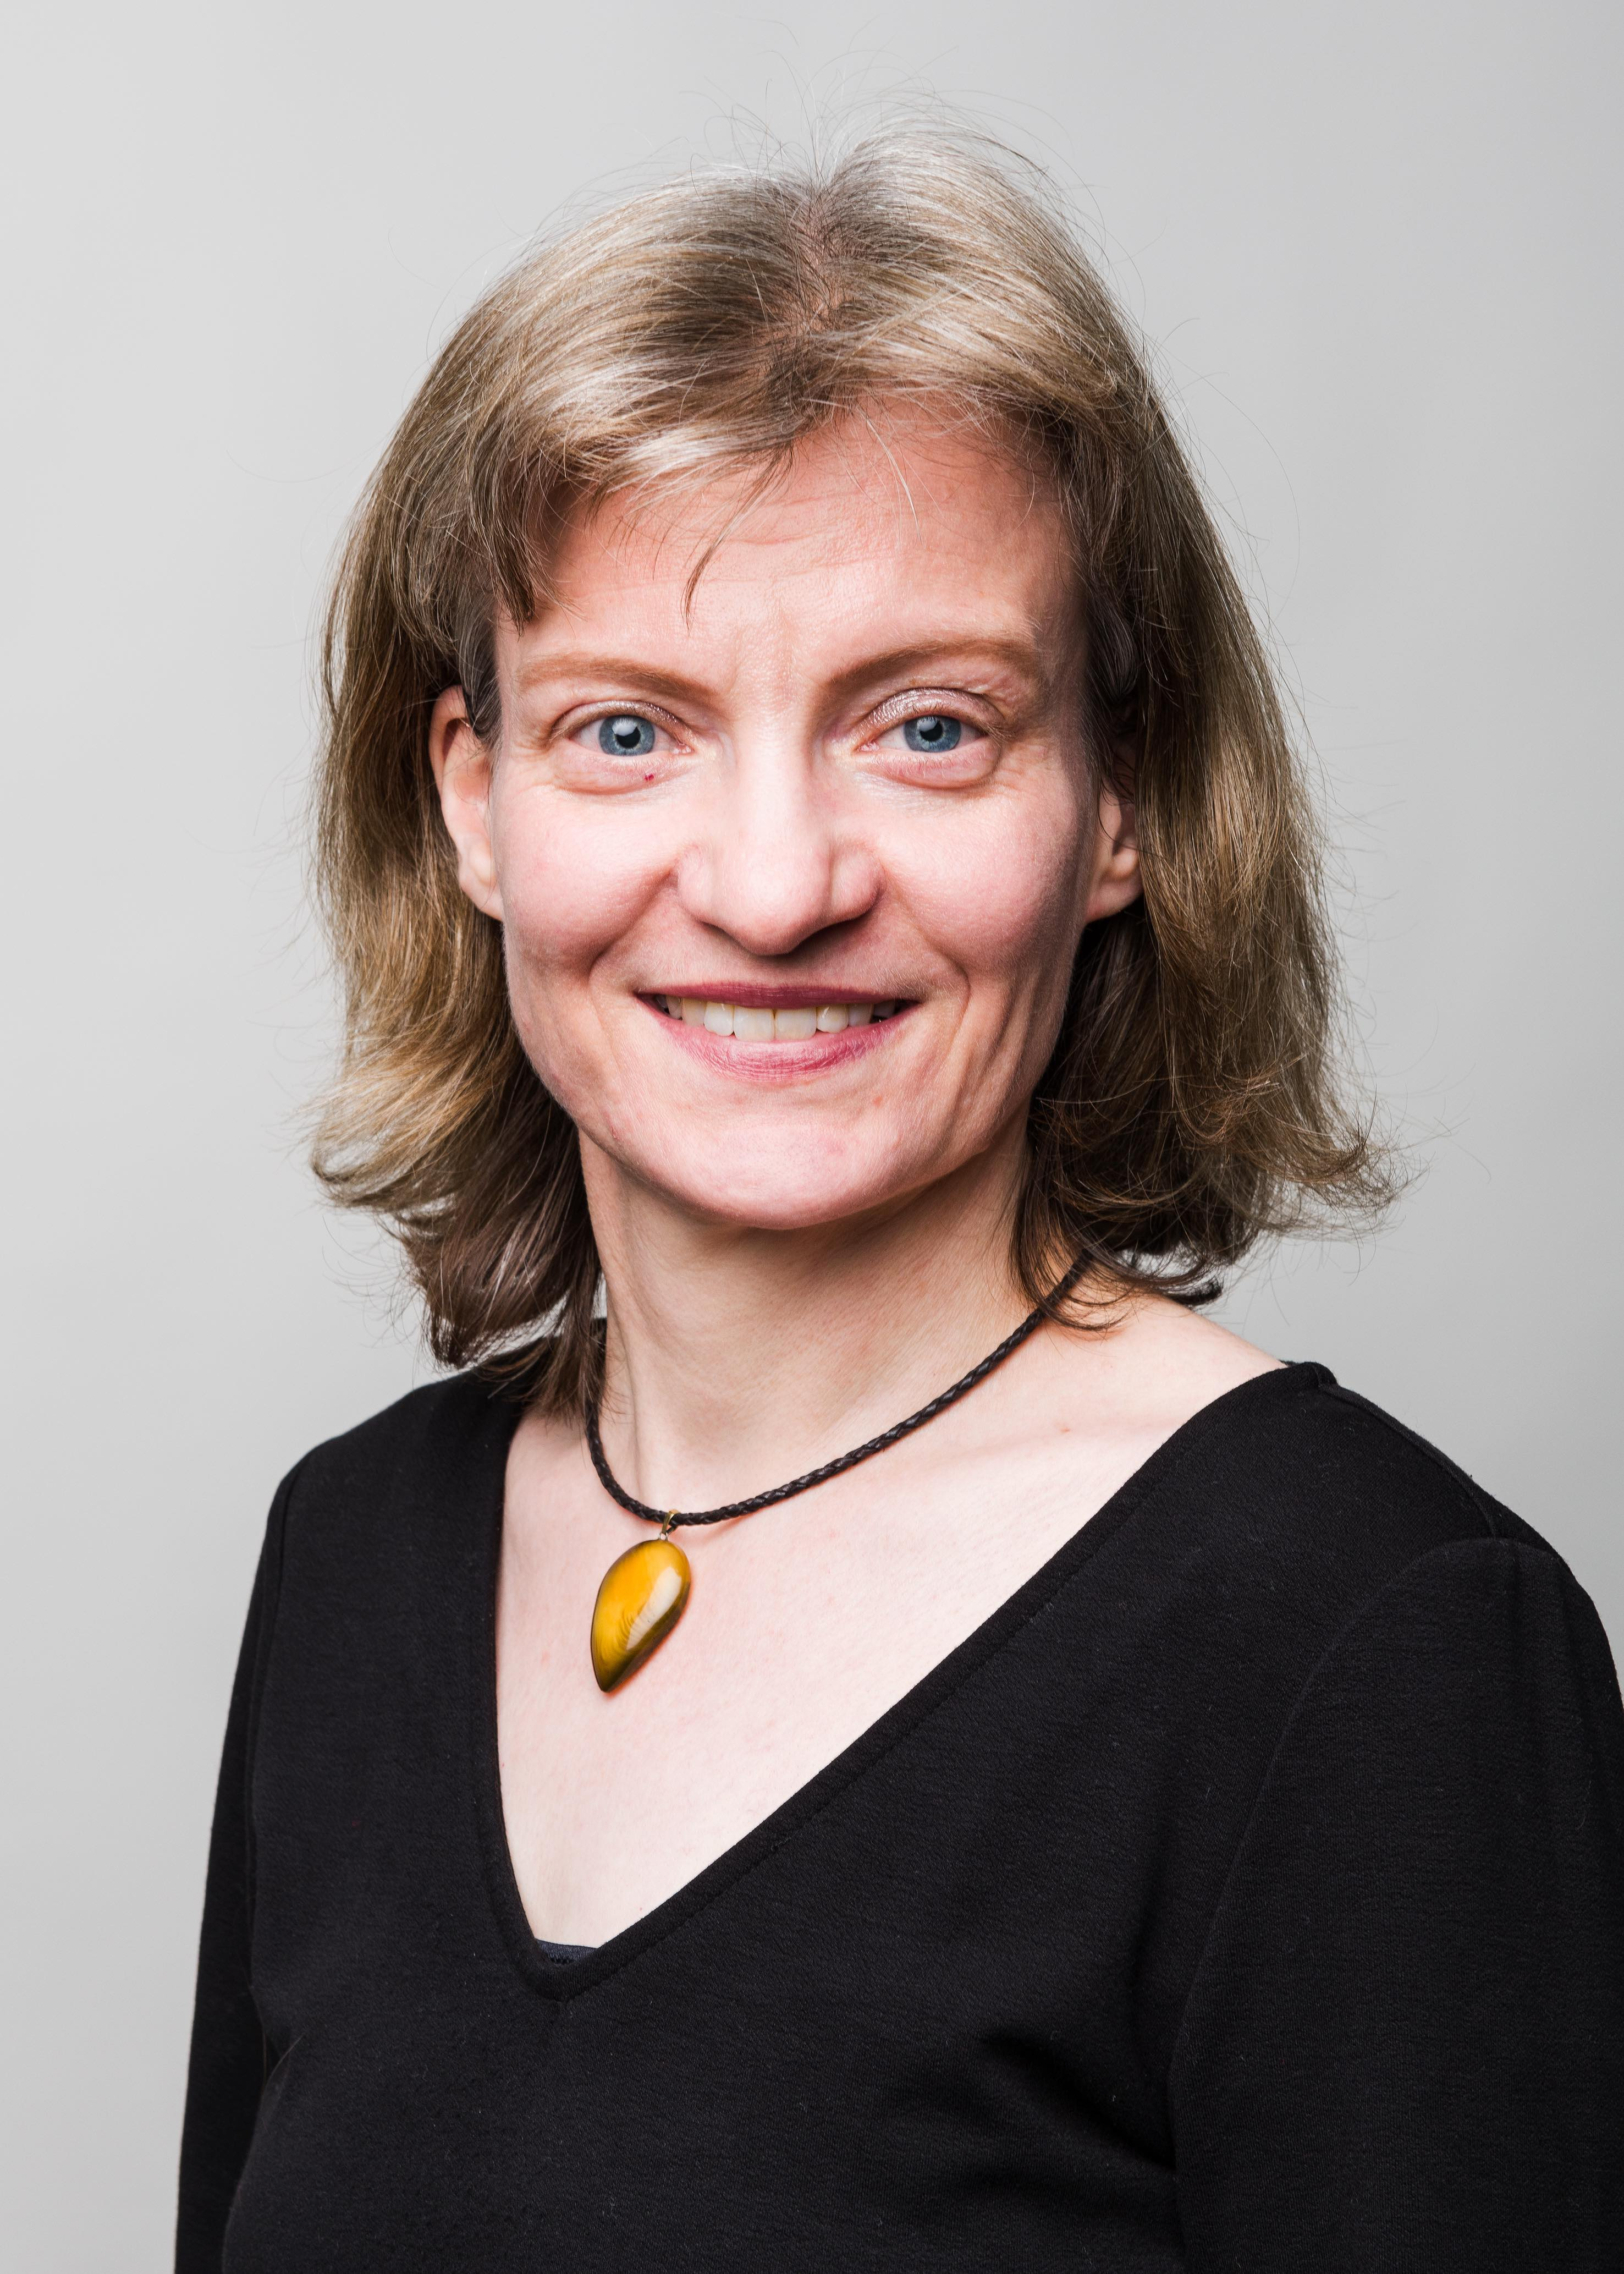 Prof. Dr. Britta Sweers